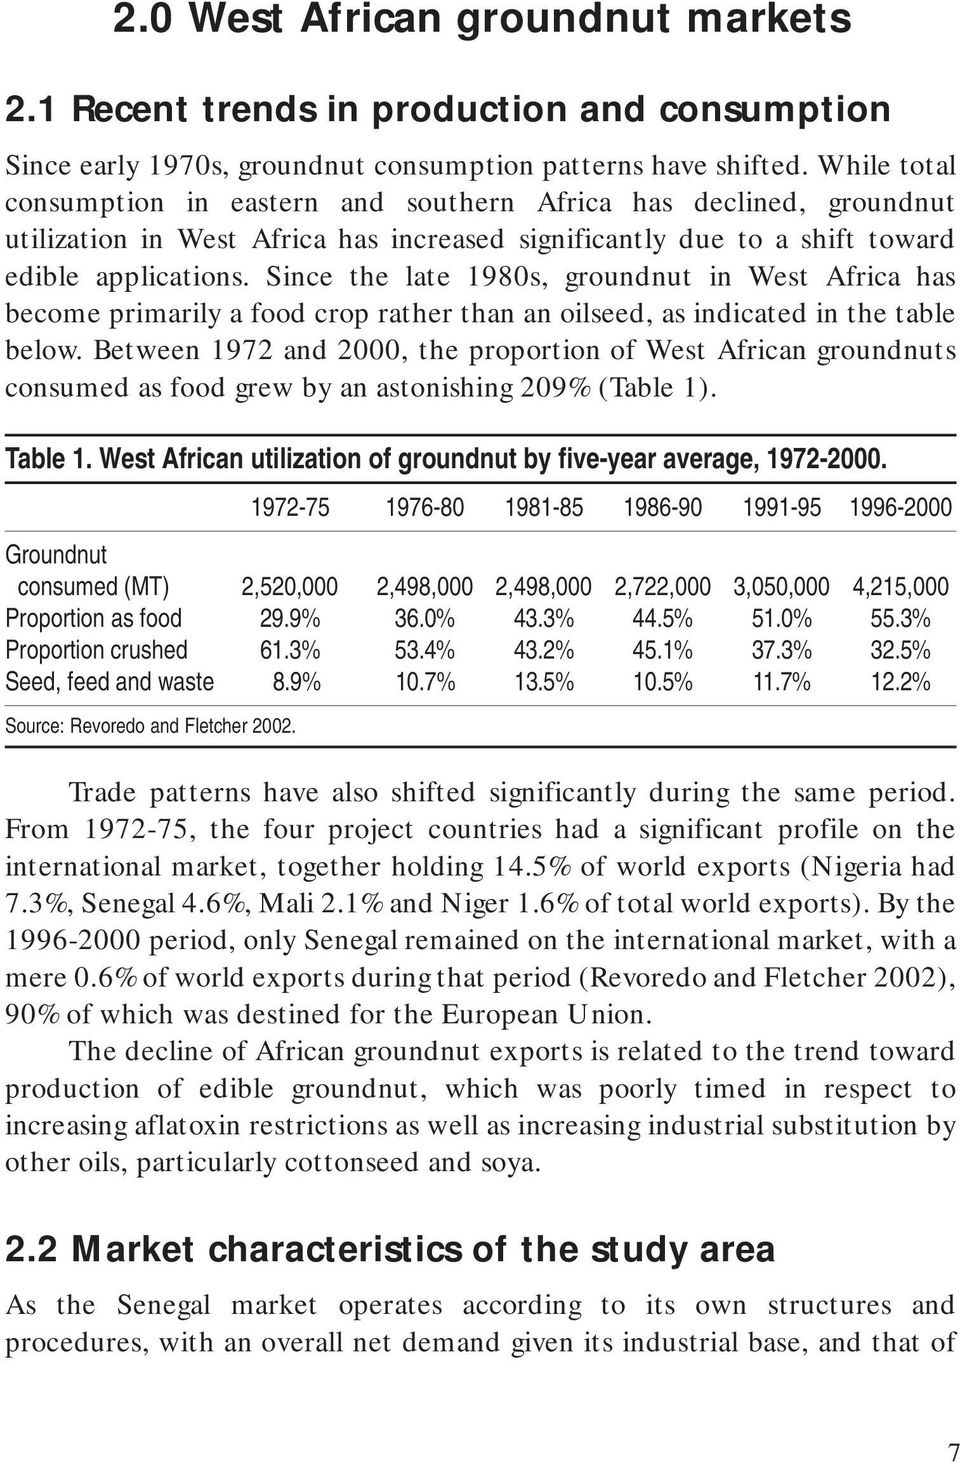 Since the late 1980s, groundnut in West Africa has become primarily a food crop rather than an oilseed, as indicated in the table below.